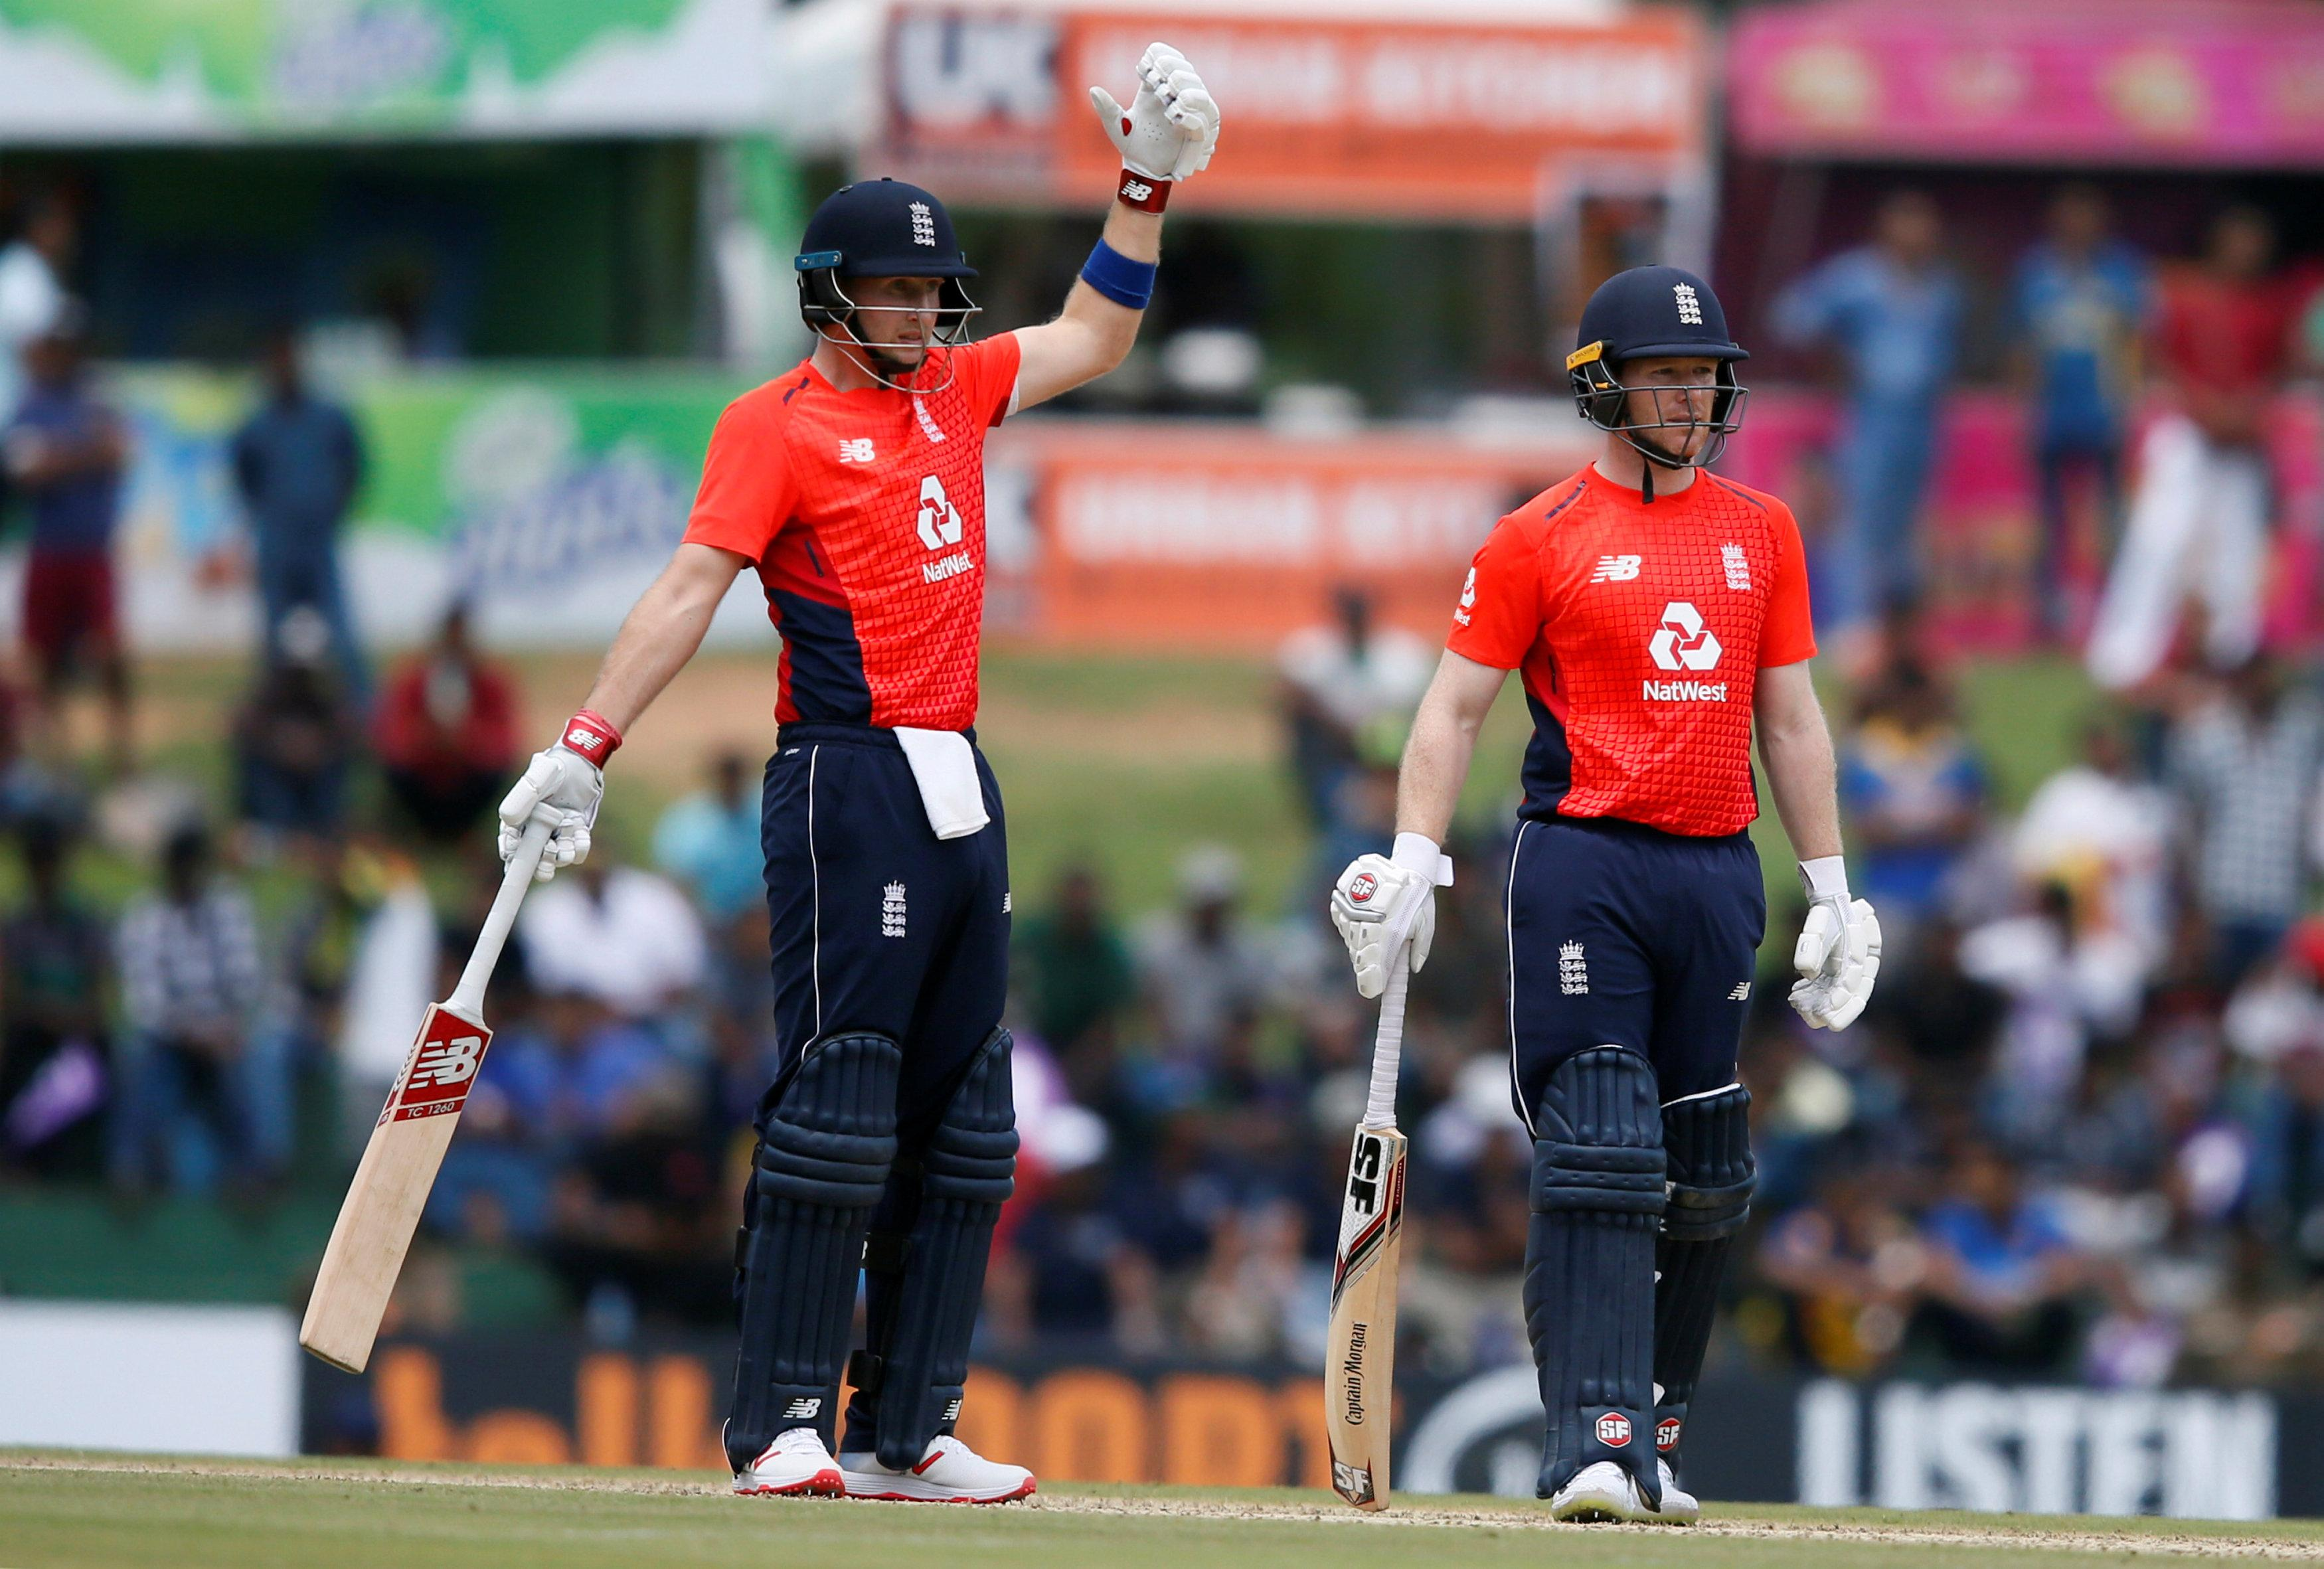 England had reached 92-2 from 15 overs before the heavens opened